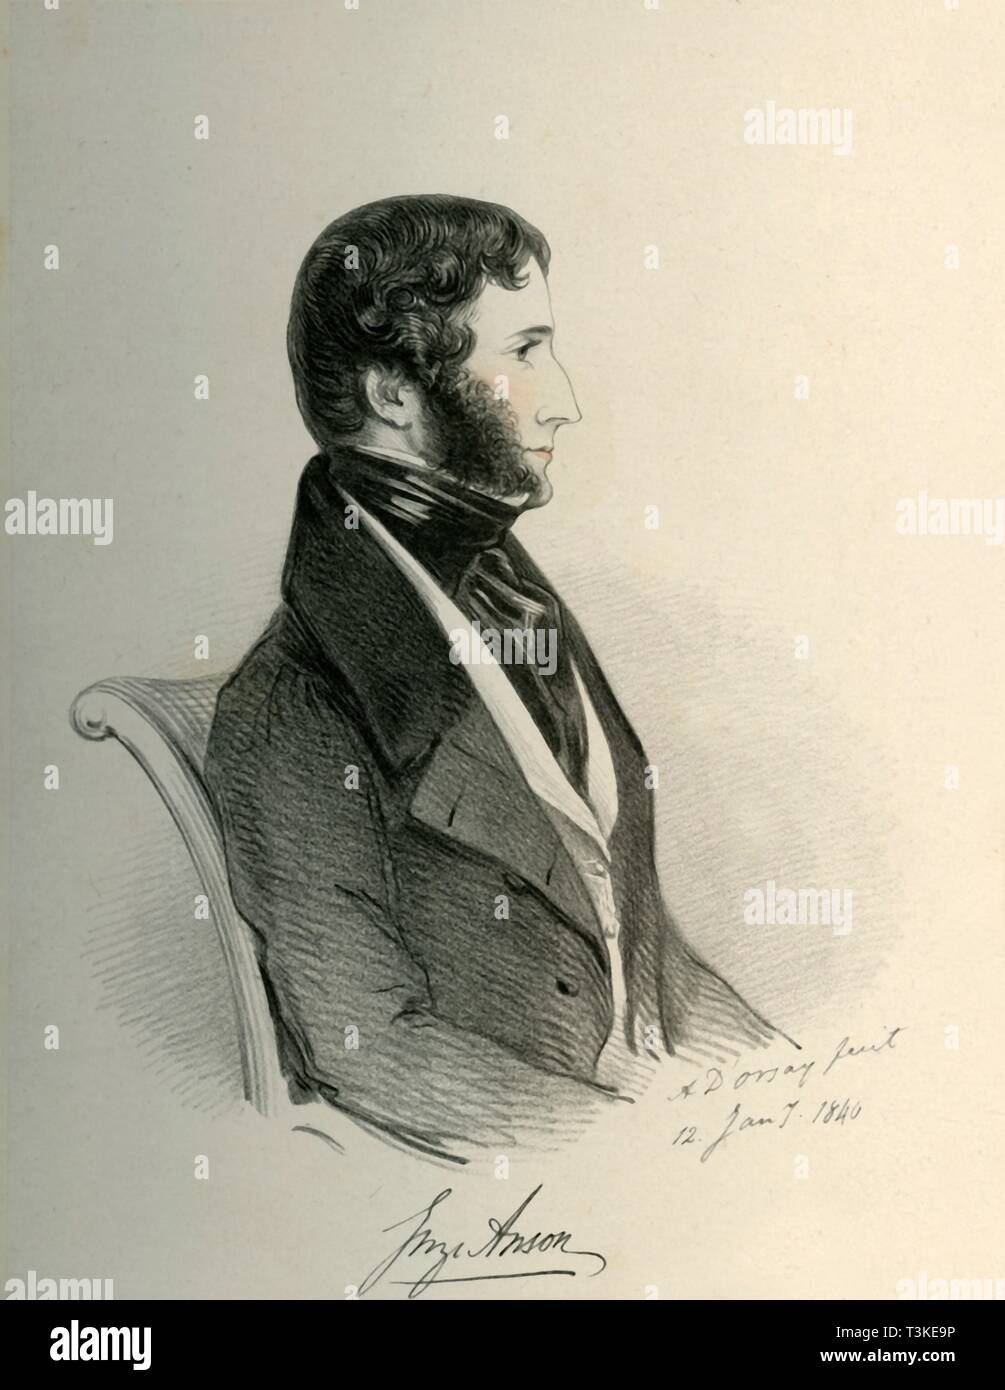 """'George Anson', 1840. Portrait of British Army officer and Whig politician George Anson (1797-1857) who served as Commander-in-Chief in India. From """"Portraits by Count D'Orsay"""", an album assembled by Lady Georgiana Codrington. [1850s] - Stock Image"""